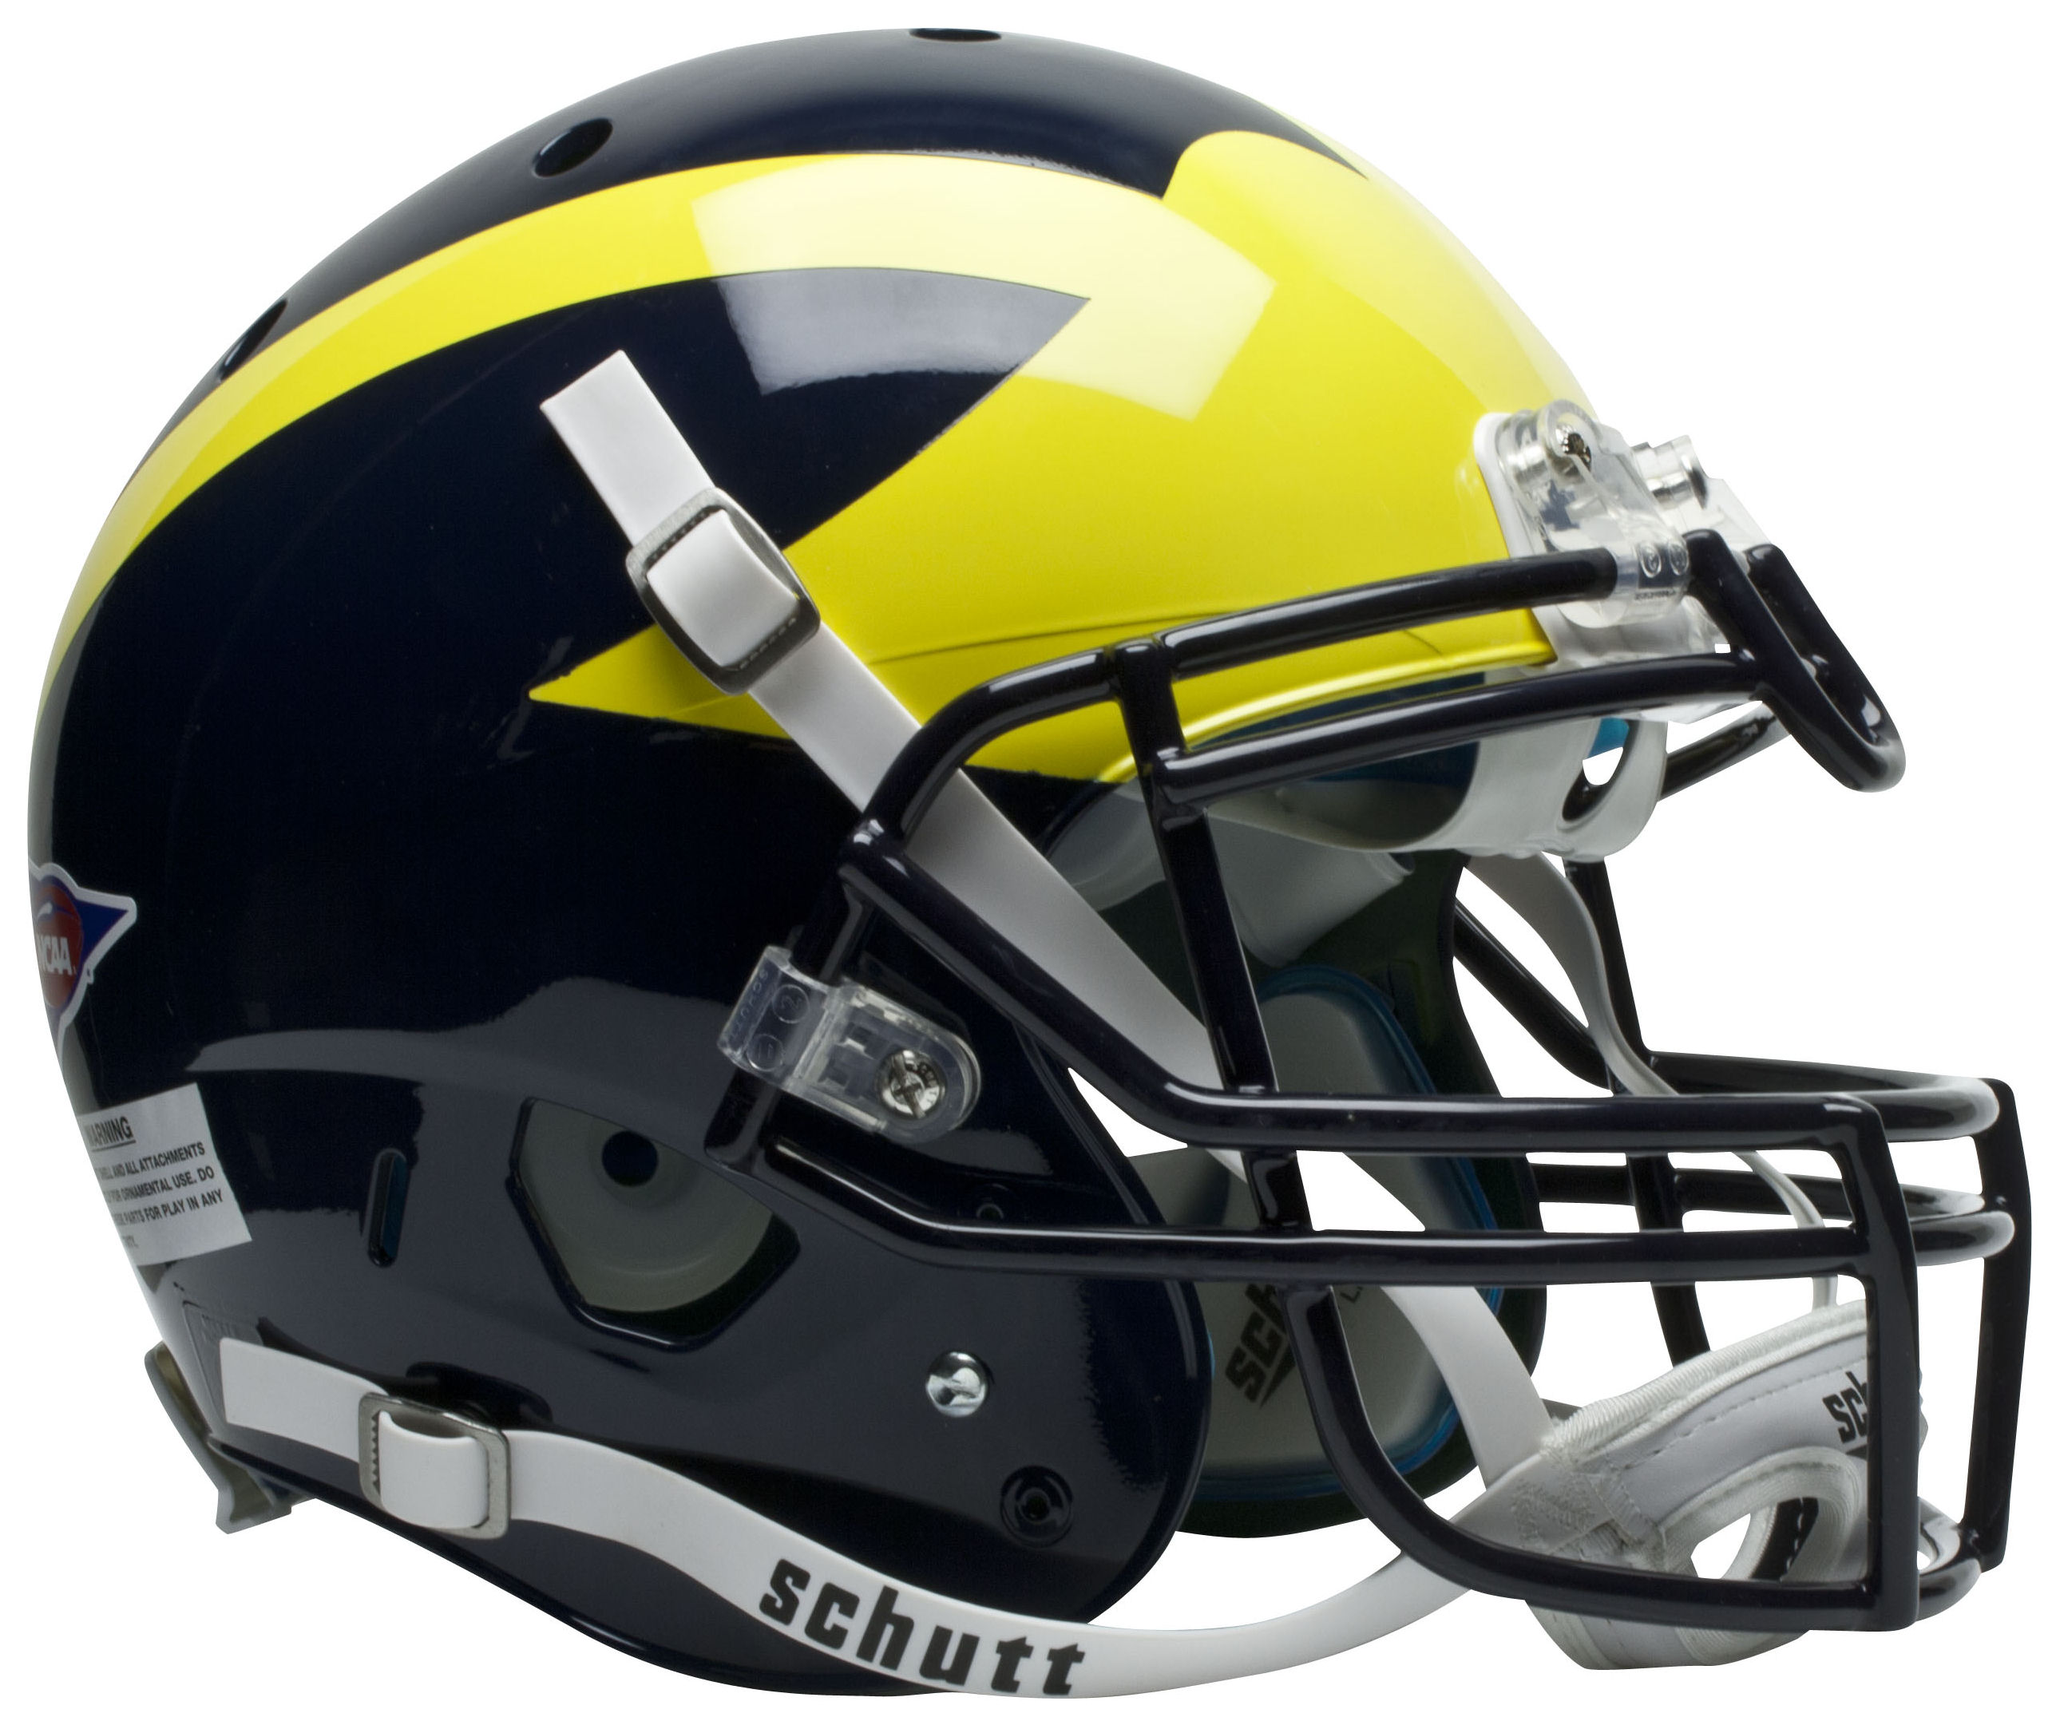 Michigan Wolverines Authentic Schutt Xp Full Size Helmet Football Helmets Football Helmet